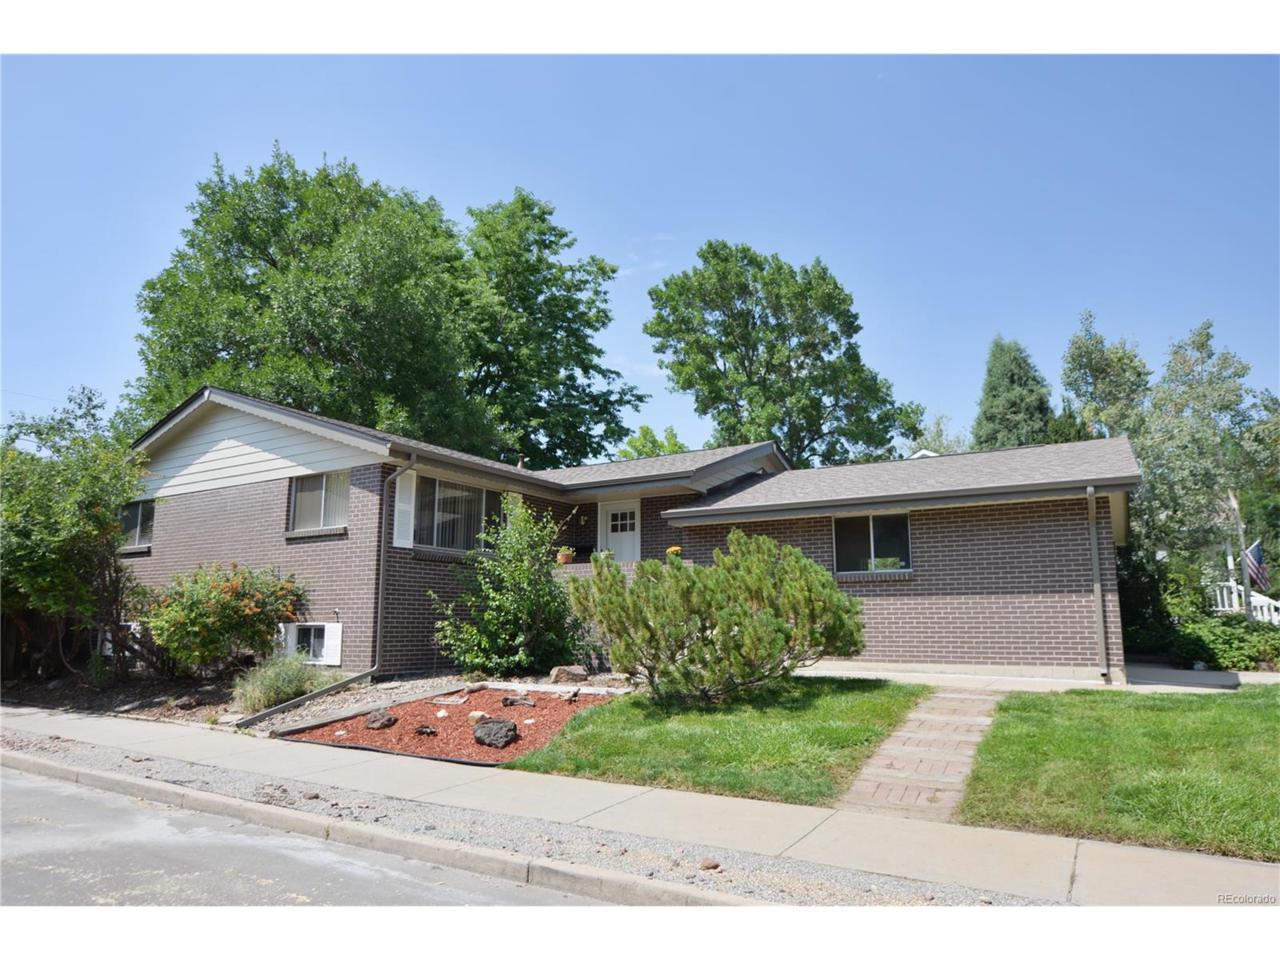 2501 Kendall Street, Edgewater, CO 80214 (MLS #9940303) :: 8z Real Estate